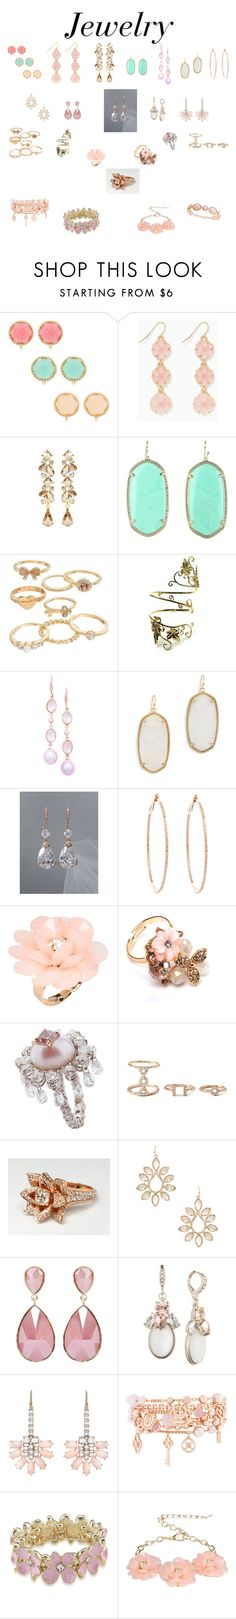 """""""Jewelry I would totally wear❤"""" by verostyle16 ❤ liked on Polyvore featuring Ben-Amun, Kendra Scott, Mudd, London Road, Rosa de la Cruz, Dettagli, Forever 21, Givenchy, Irene Neuwirth and Henri Bendel"""